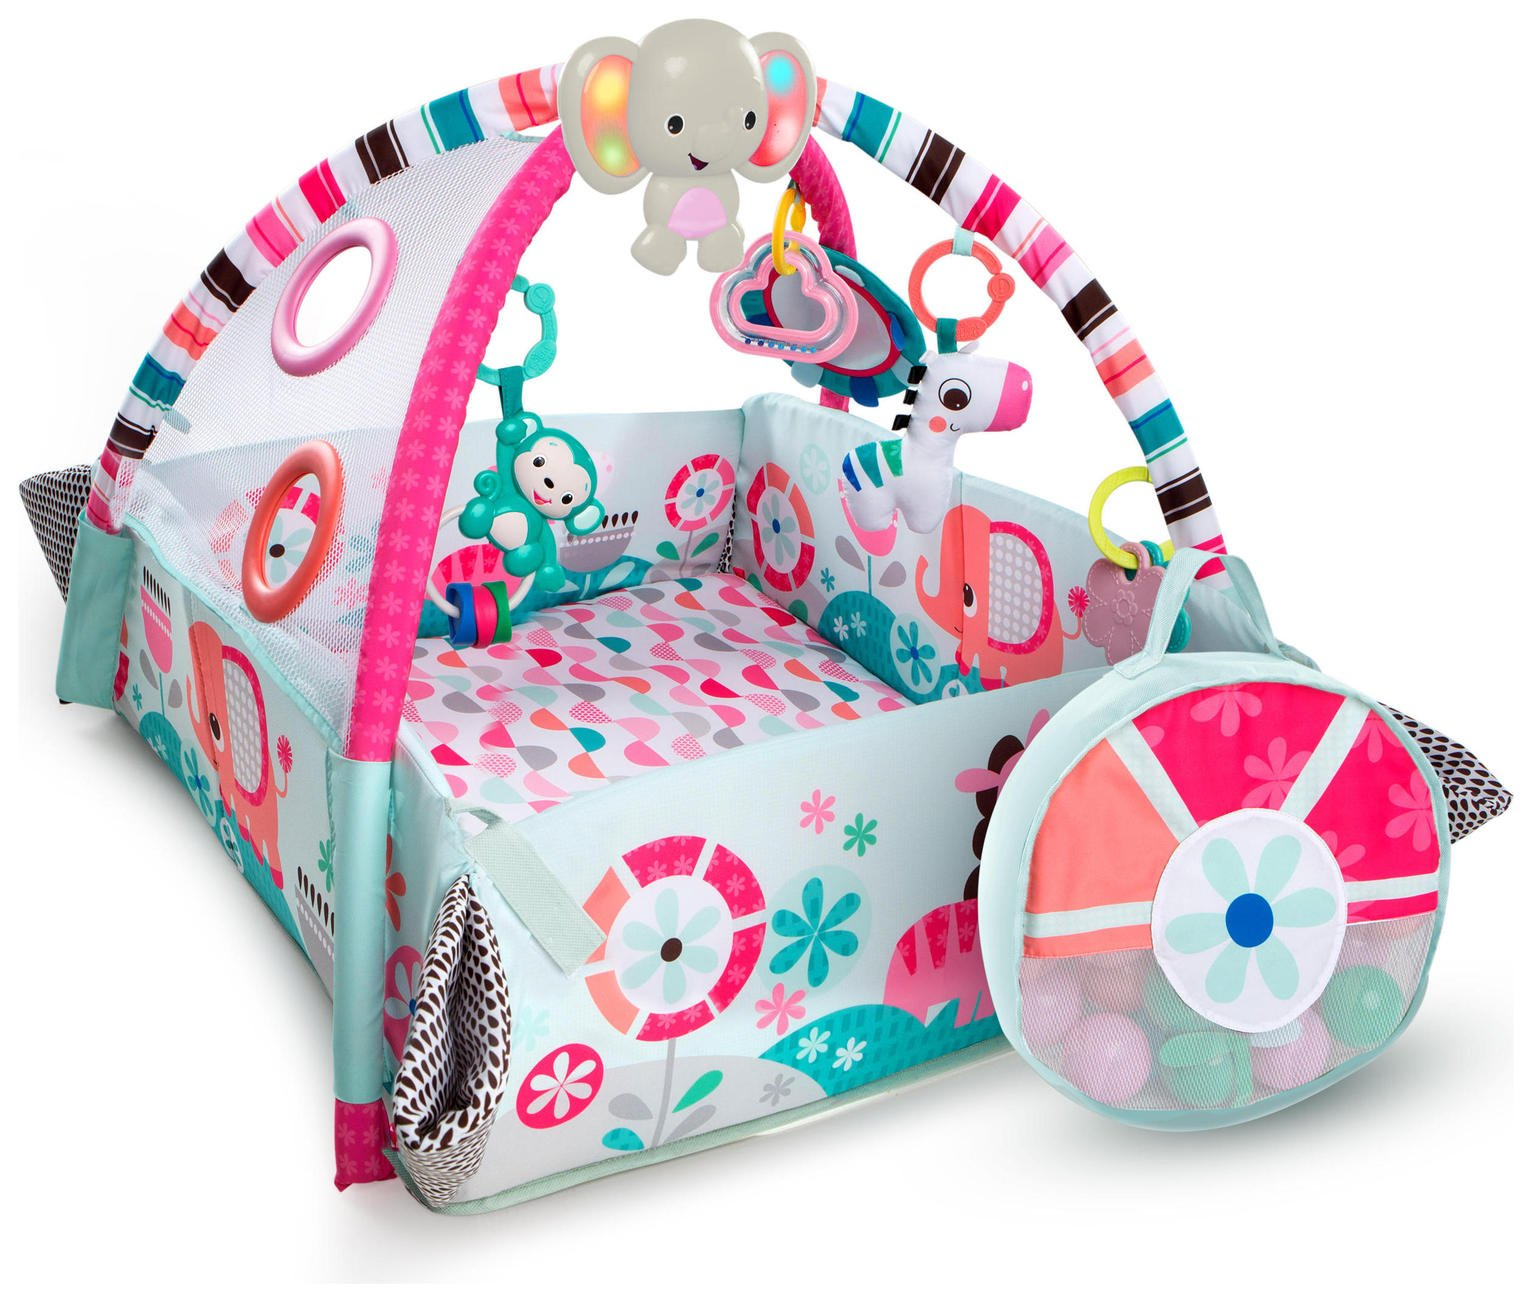 Bright Starts 5 in 1 Ball Play Gym - Pink